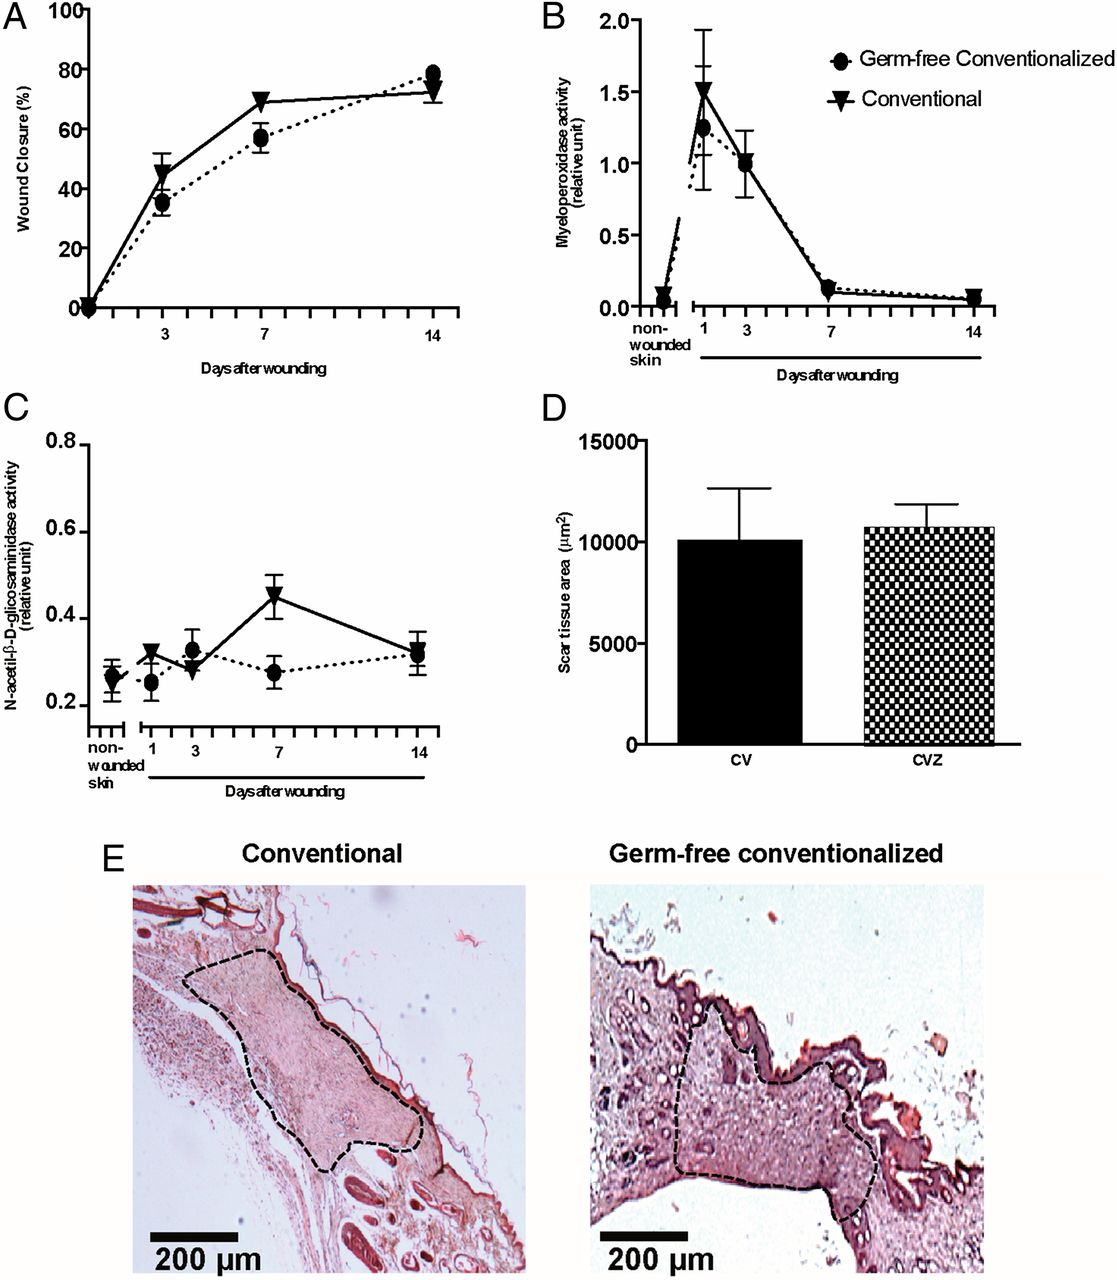 hight resolution of gf colonized mice restore wound healing to conventional mouse level